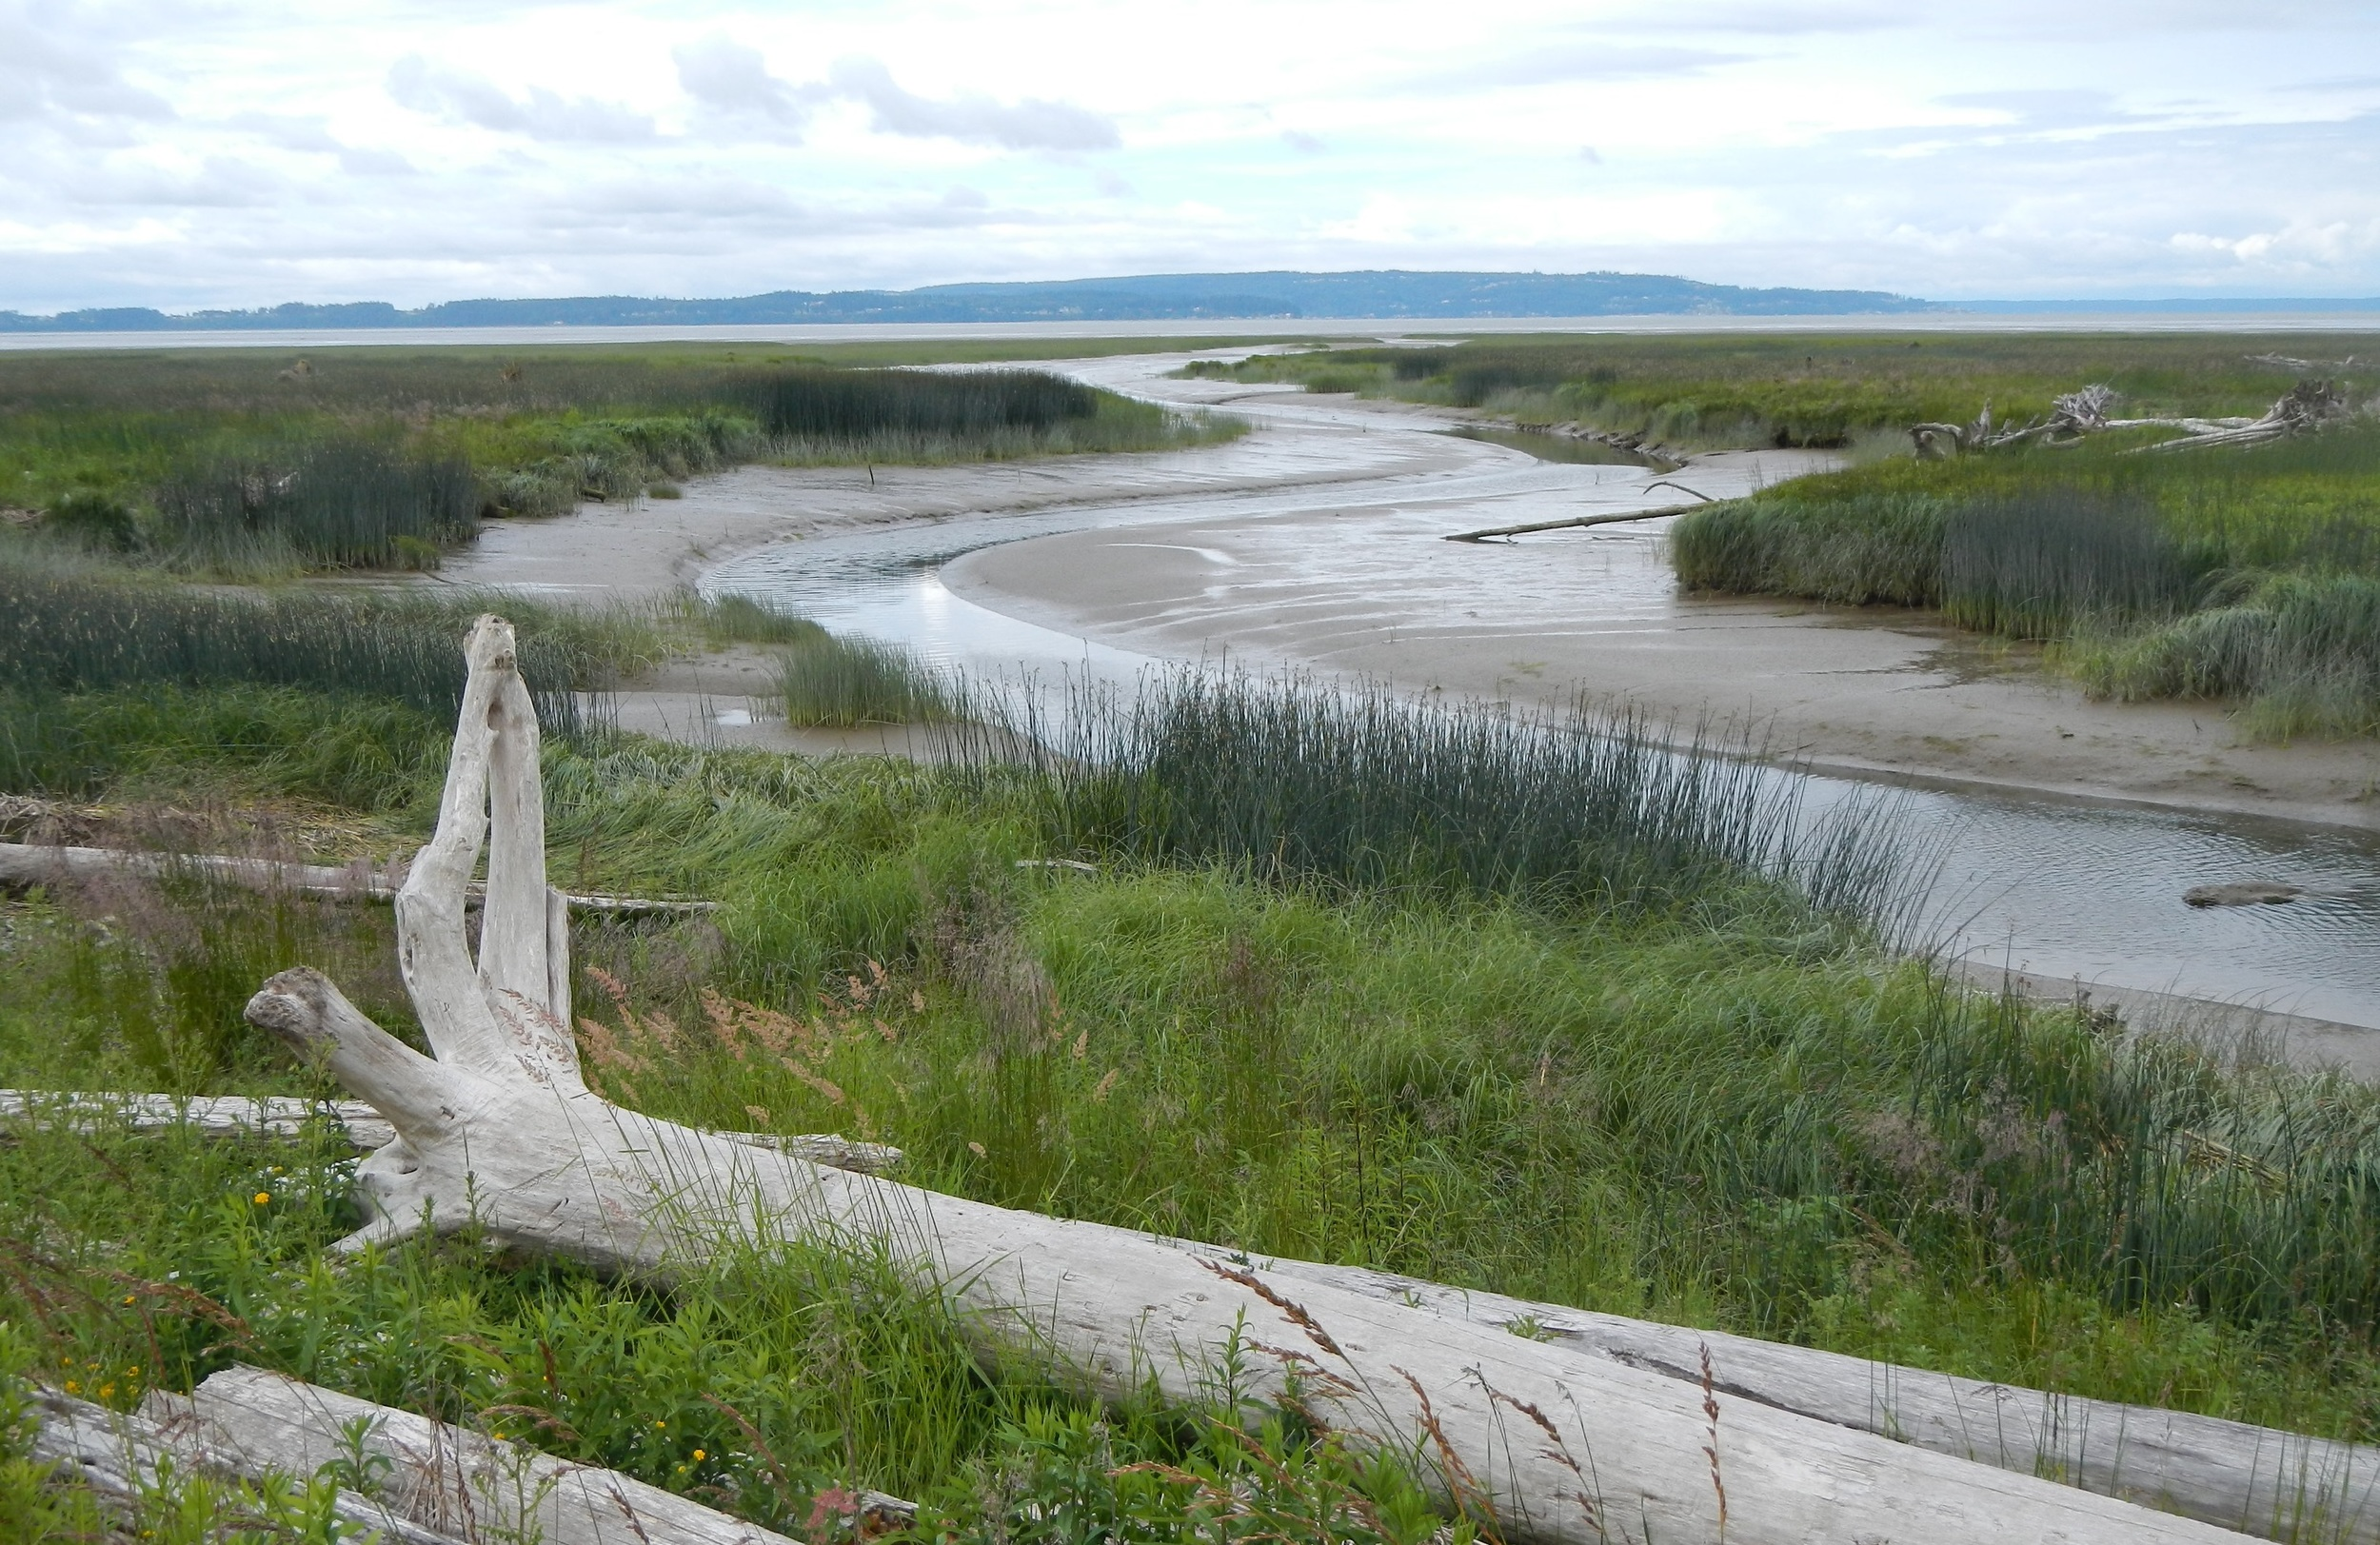 Future marsh will provide habitat for juvenile salmon and a rich diversity of other fish and wildlife. (photo by Jenny Baker, TNC)